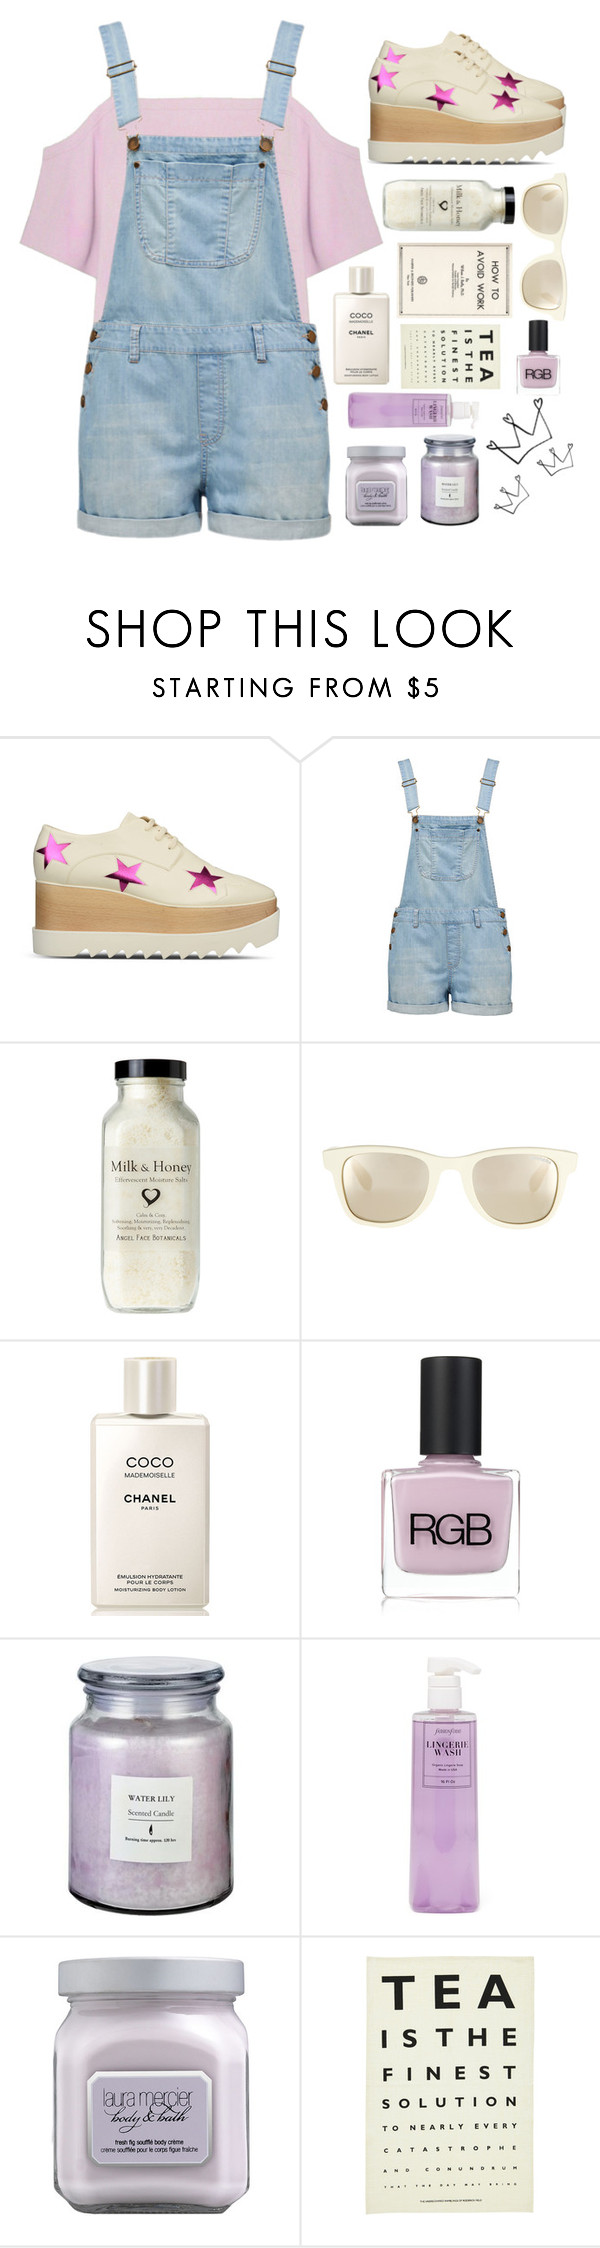 """""""Perfect disasters"""" by xniko ❤ liked on Polyvore featuring STELLA McCARTNEY, Forever New, Carrera, Chanel, RGB Cosmetics, Fashion Forms, Laura Mercier, Ulster Weavers, ivory and overall"""